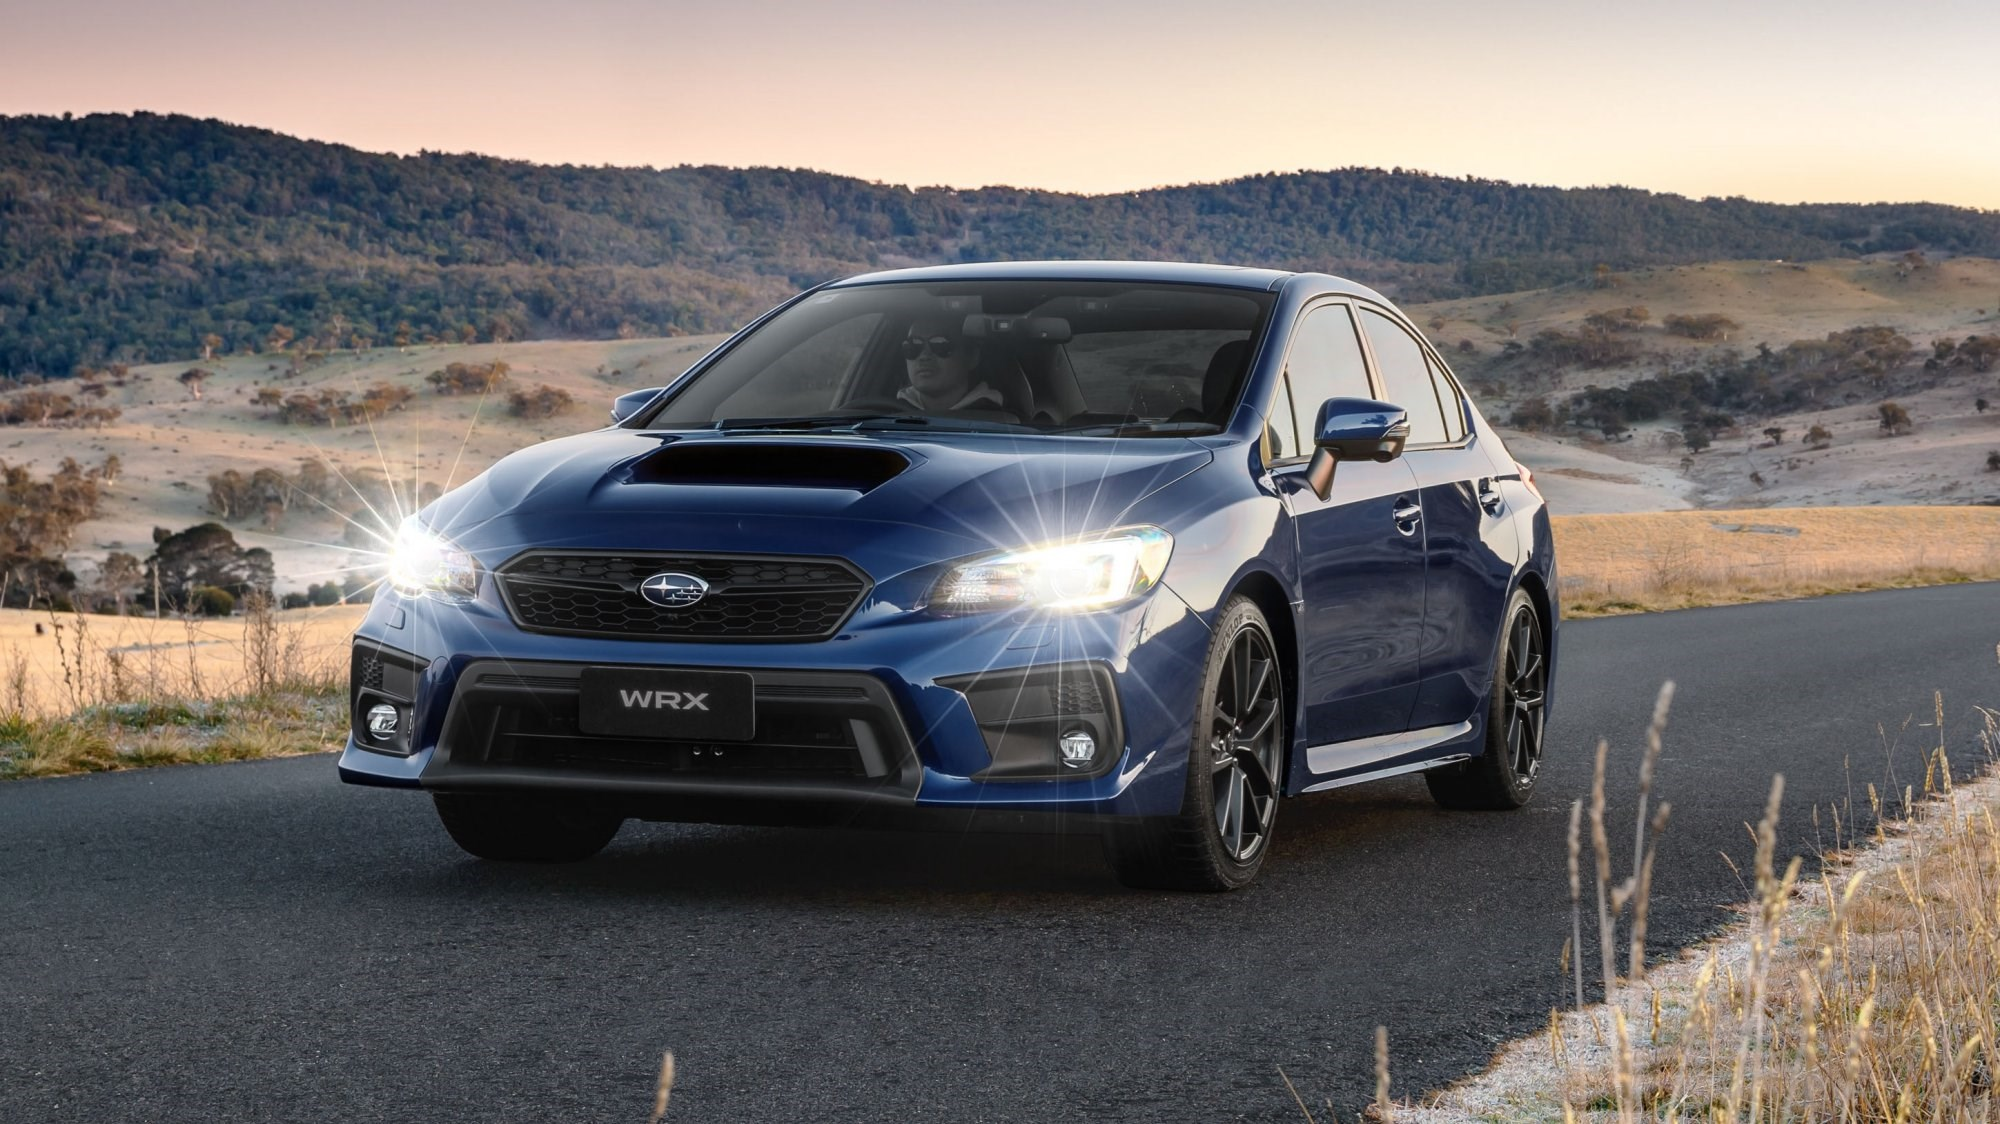 2018 subaru updates.  subaru 2018 subaru wrx there are no mechanical changes with the update  wrx soldiering on same 197kw350nm turbo fourpot boxer engine  on subaru updates l